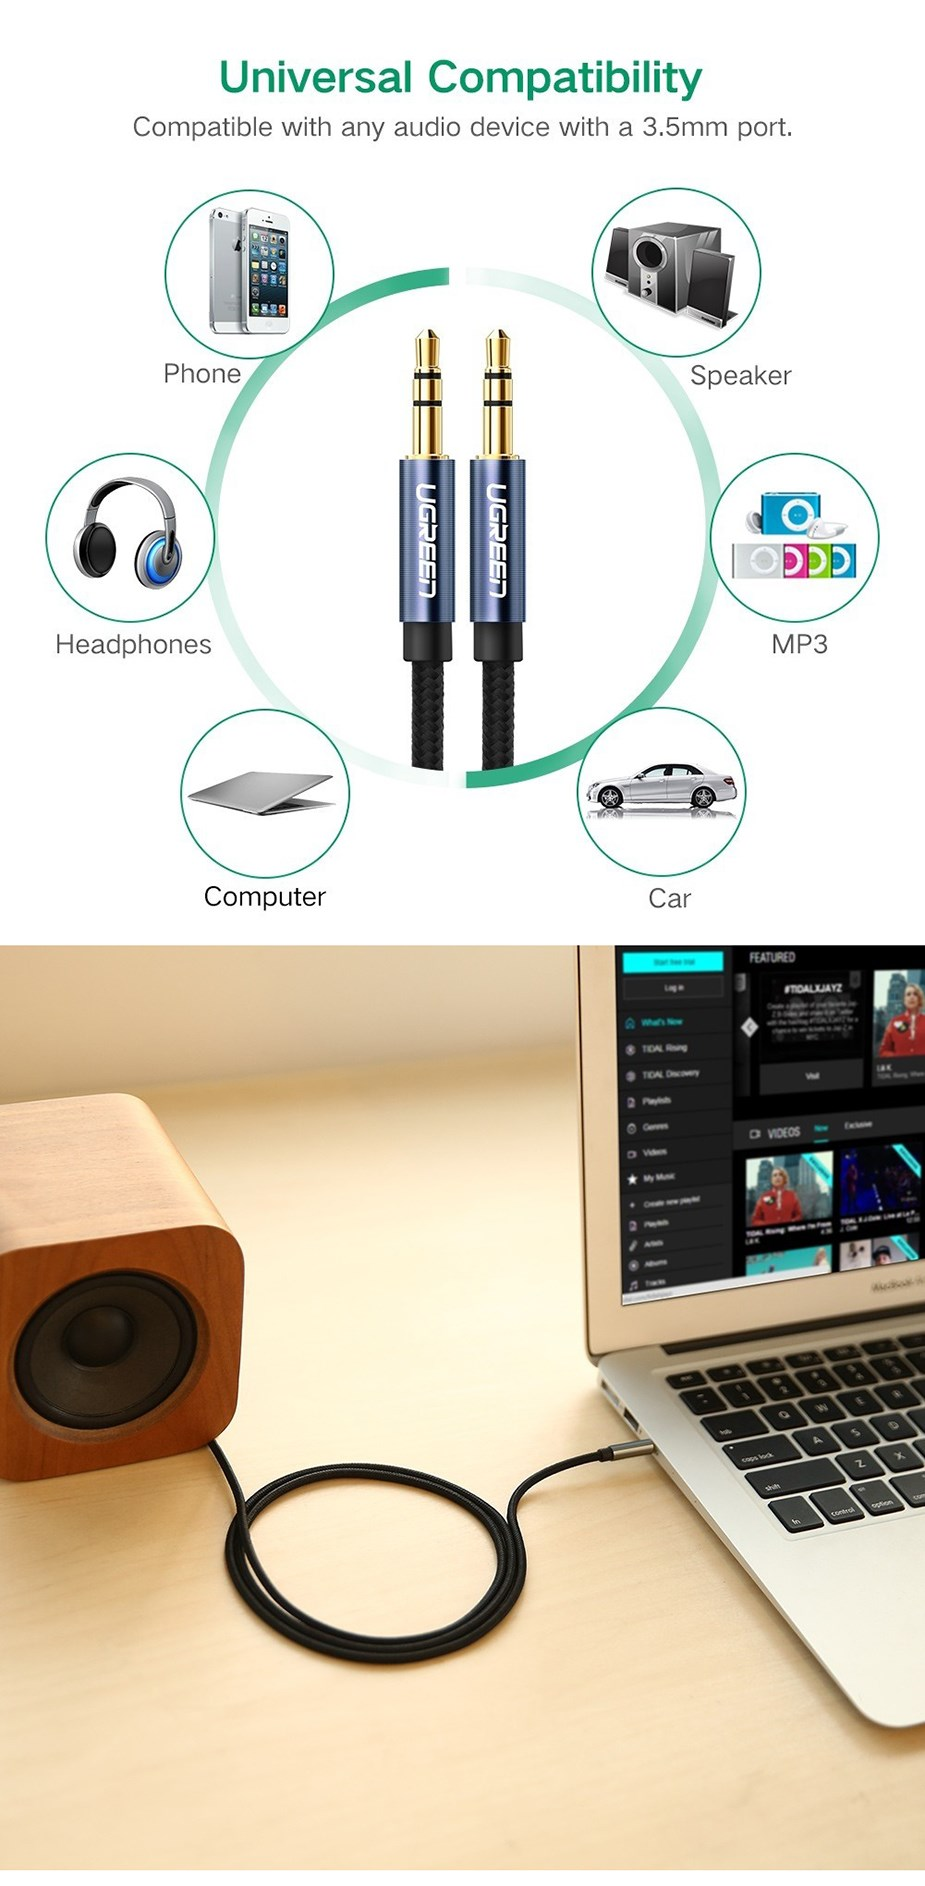 Ugreen 50368 2m 3.5mm Male to 3.5mm Male Audio Cable - Overview 1